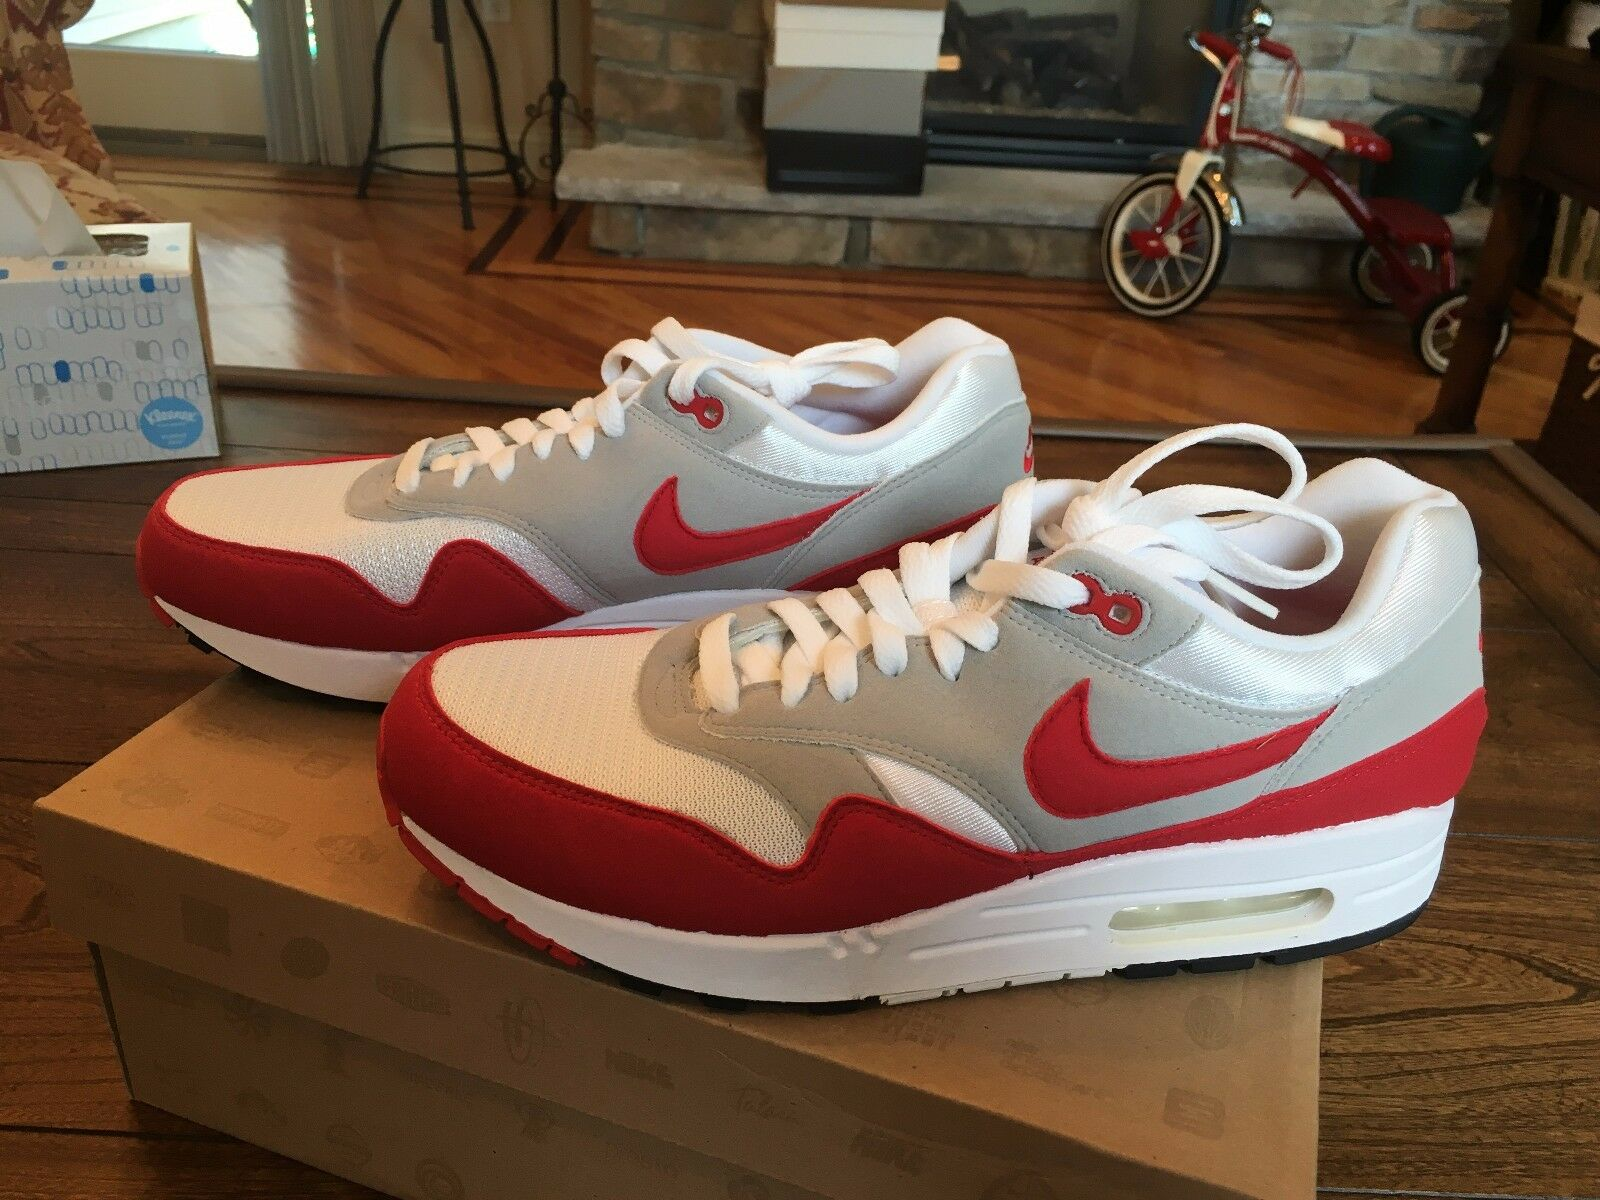 Nike Air Max 1 History of Air HOA Quickstrike Original OG 2018 size 10 Deadstock The latest discount shoes for men and women